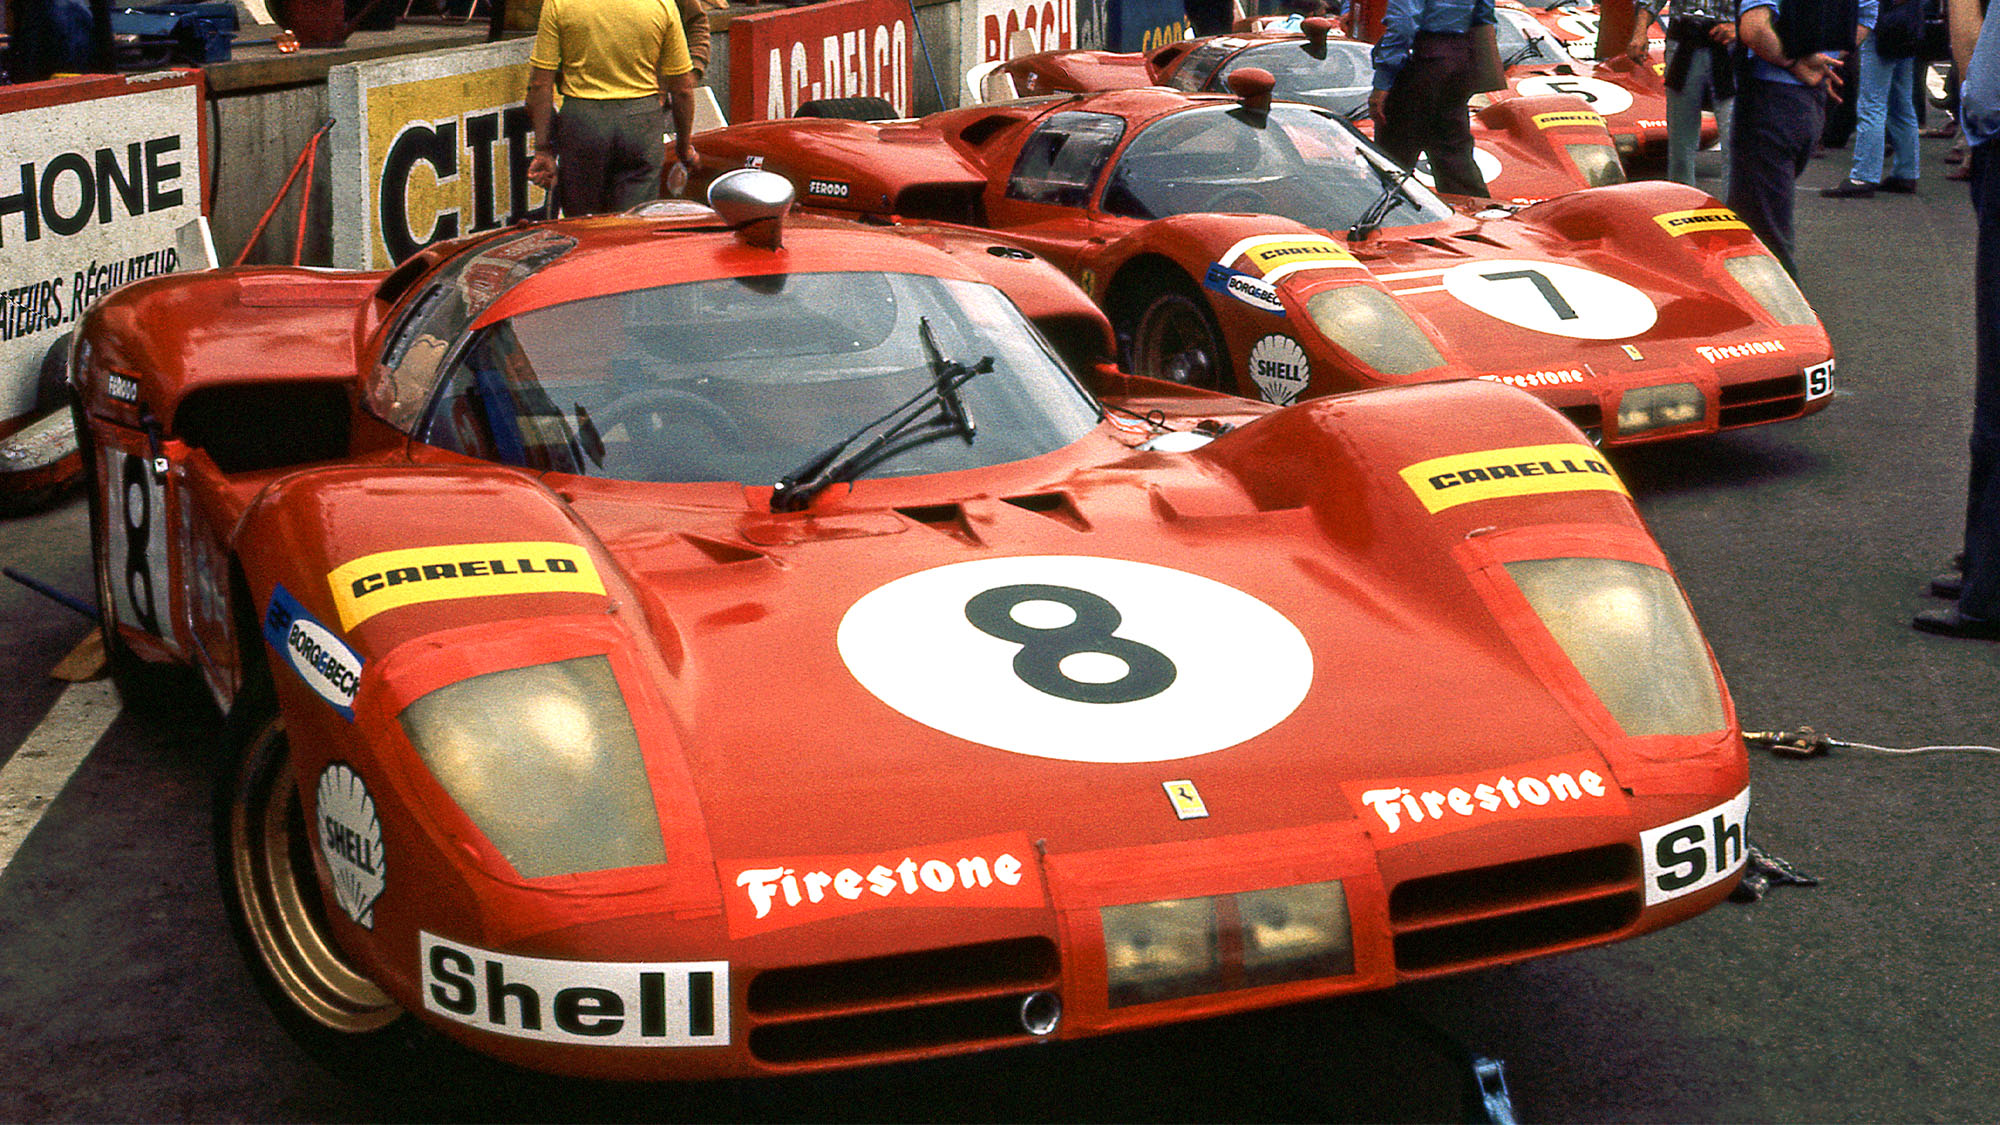 1970 Ferrari 512Ss in the Pits at Apron, Le Mans 24 Hours. (Photo by: GP Library/Universal Images Group via Getty Images)